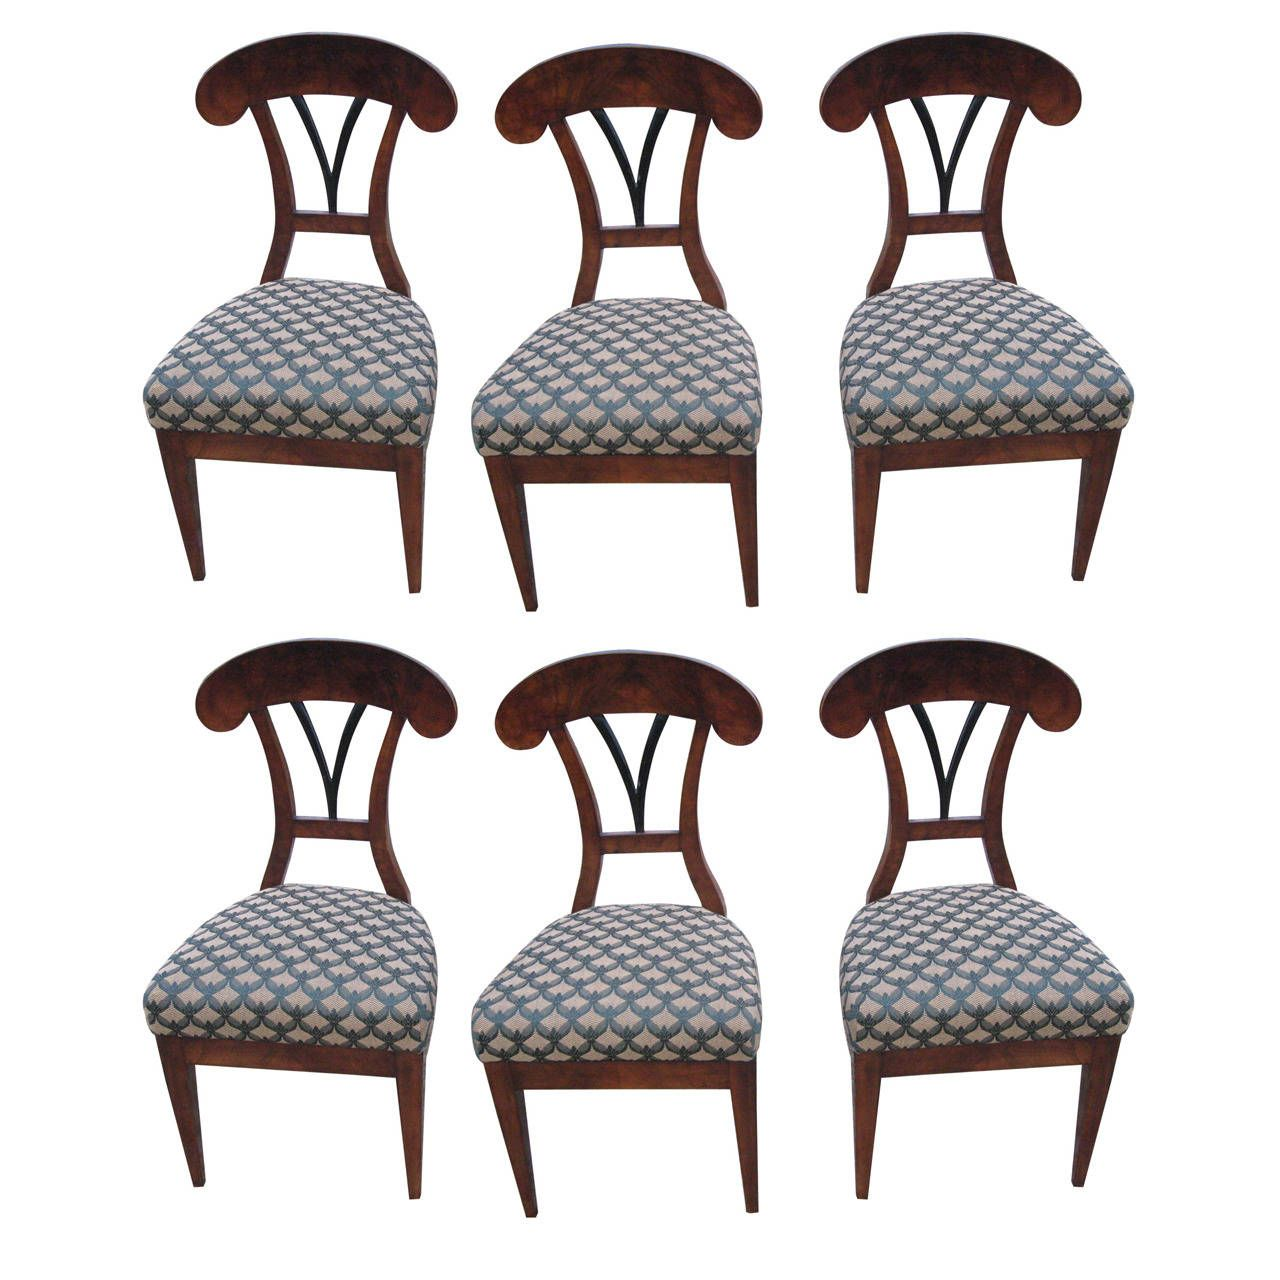 Rare Set of Six Biedermeier, 19th Century Austrian Side Chairs | From a unique collection of antique and modern side chairs at https://www.1stdibs.com/furniture/seating/side-chairs/